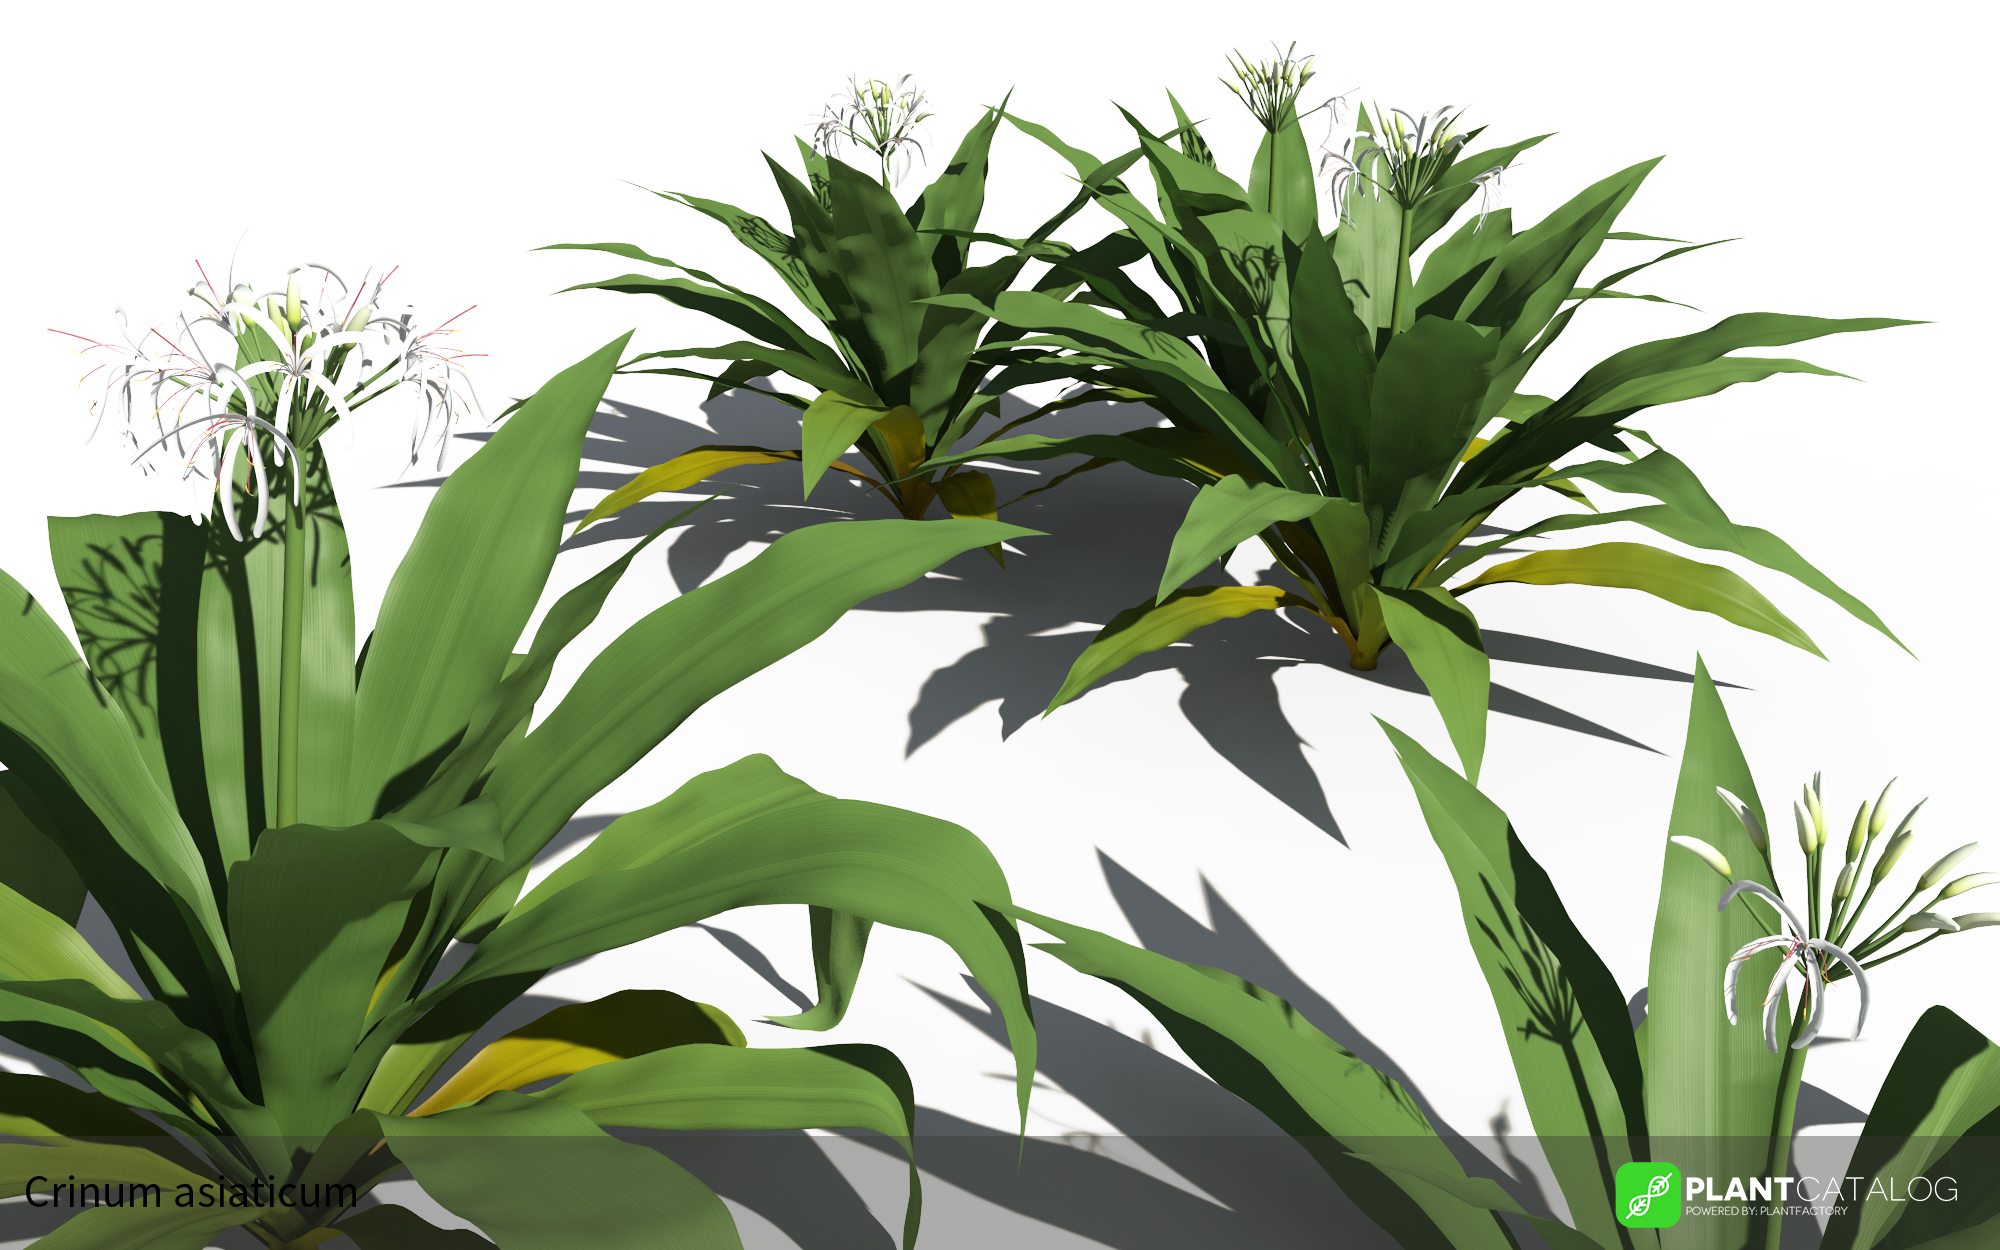 3D model of the Spider lily - Crinum asiaticum - from the PlantCatalog, rendered in VUE